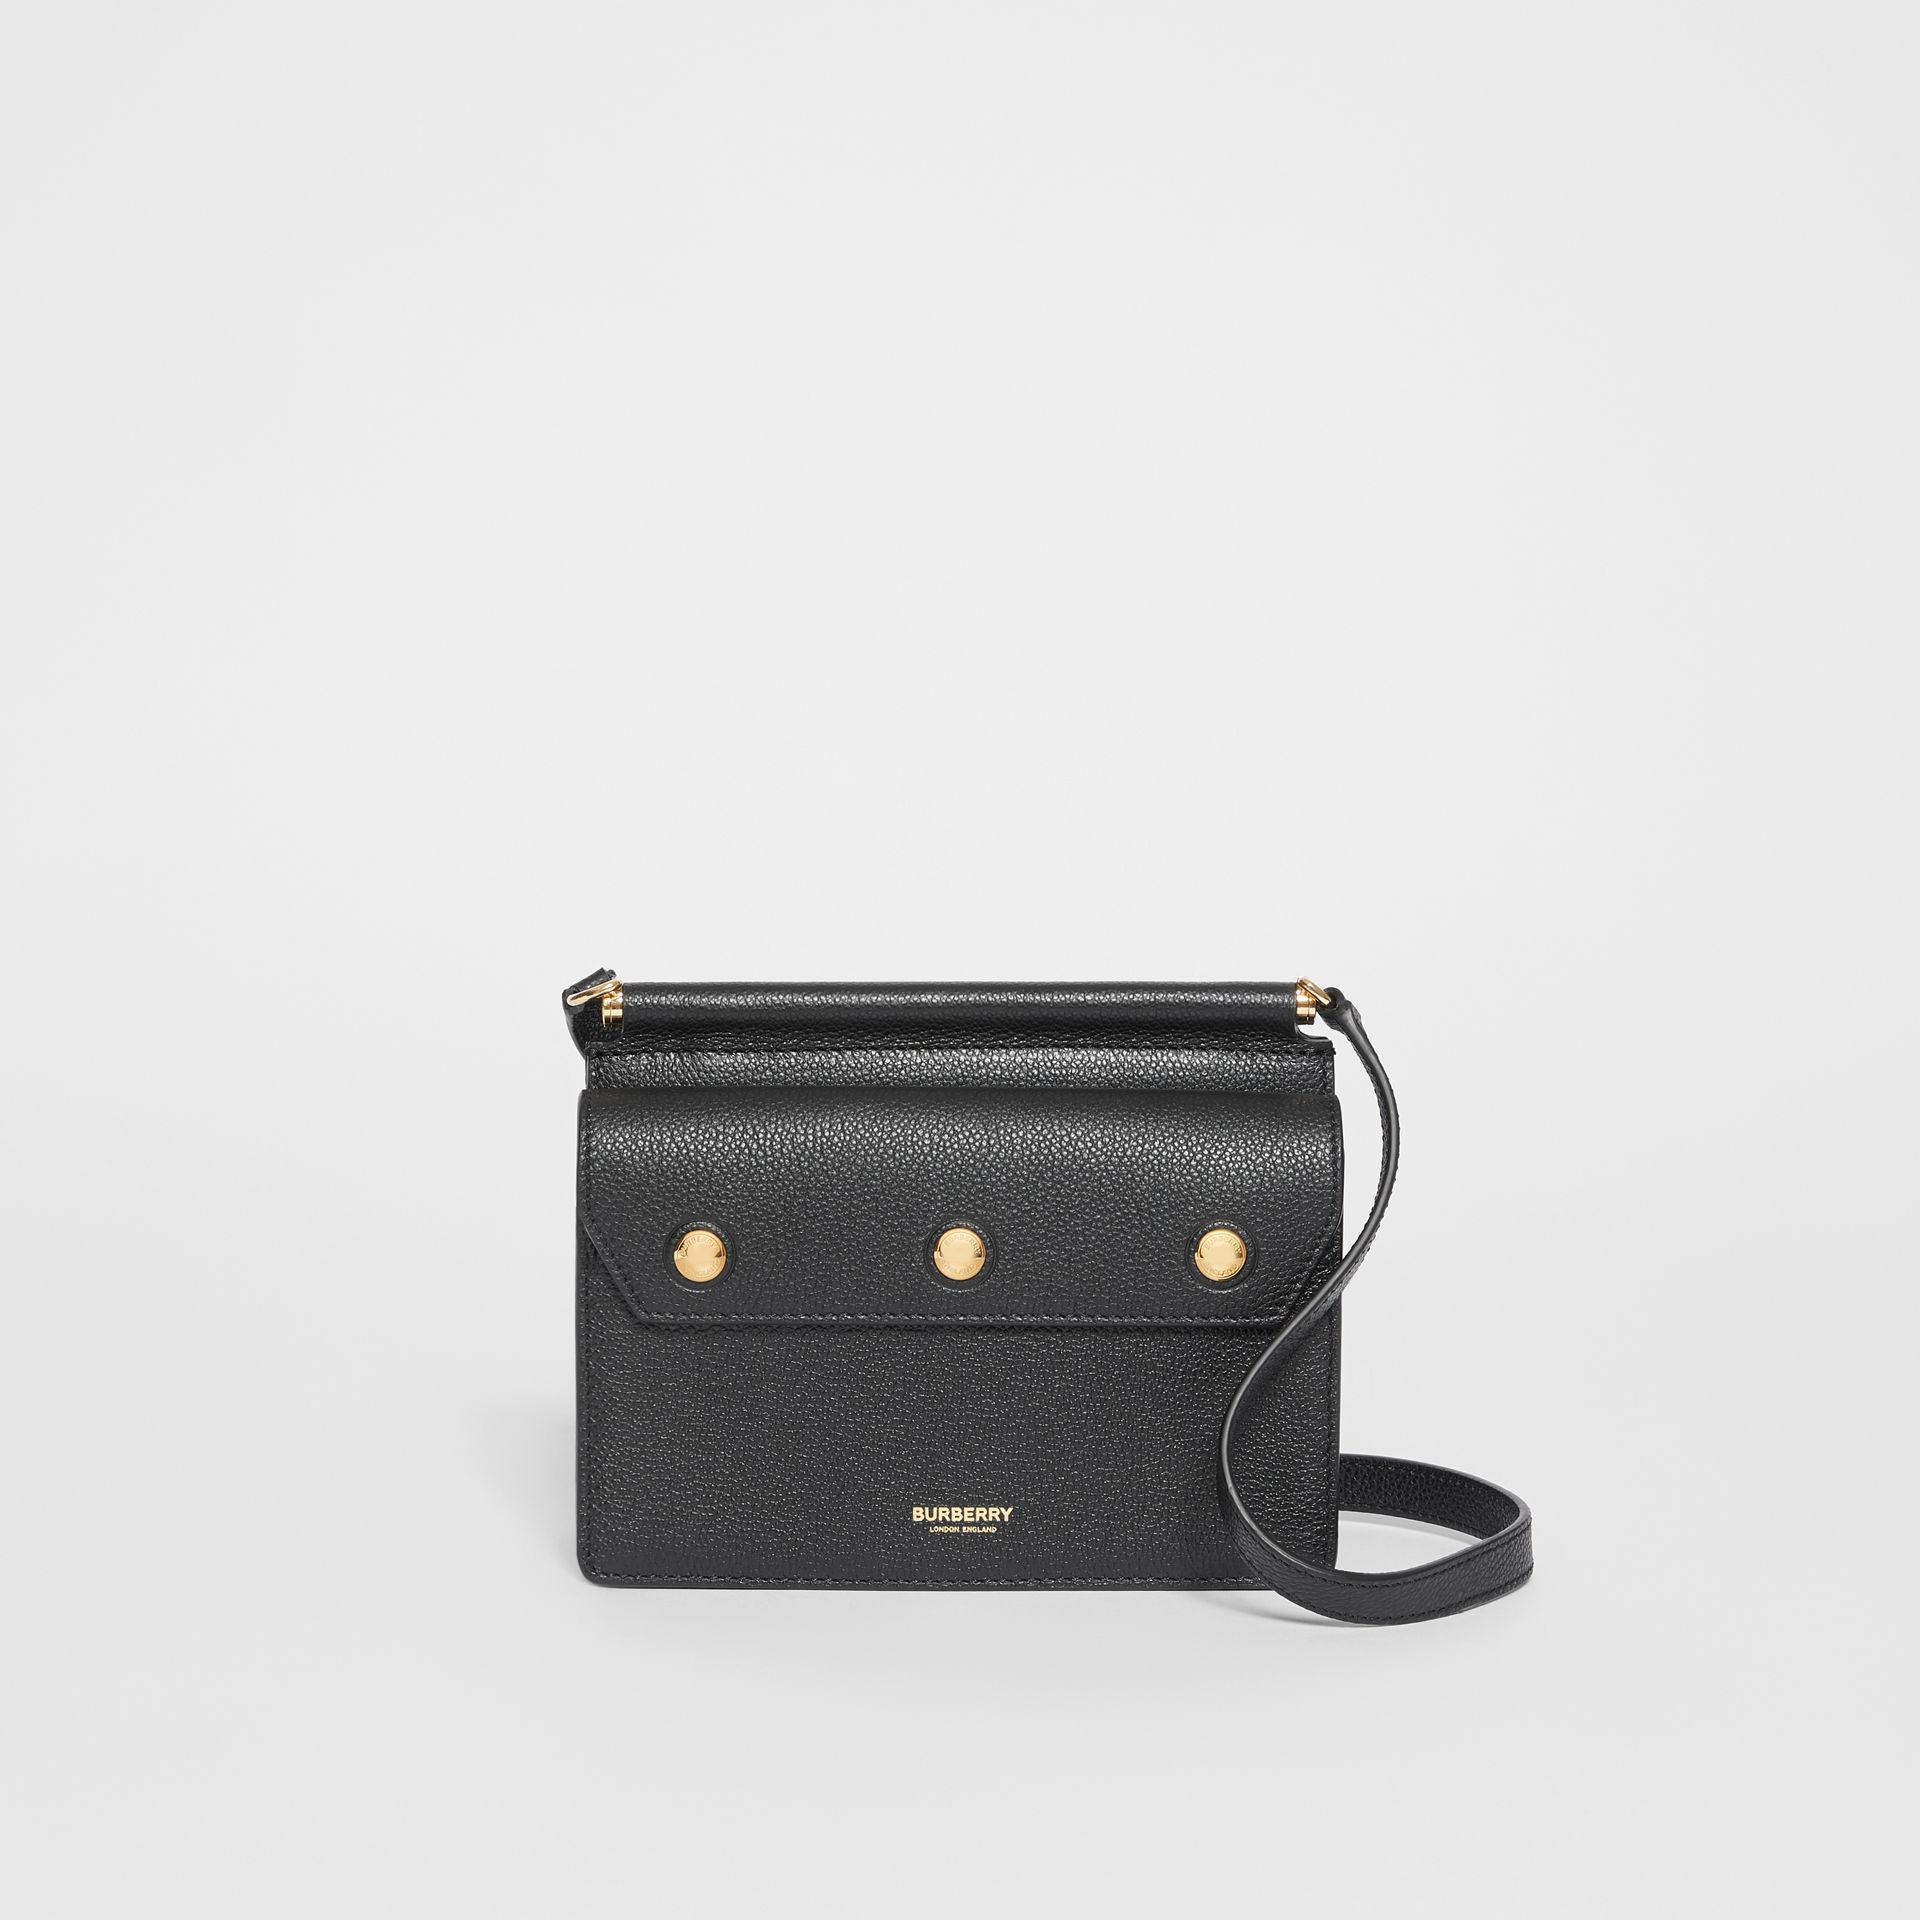 Mini Leather Title Bag with Pocket Detail in Black - Women | Burberry Singapore - gallery image 0